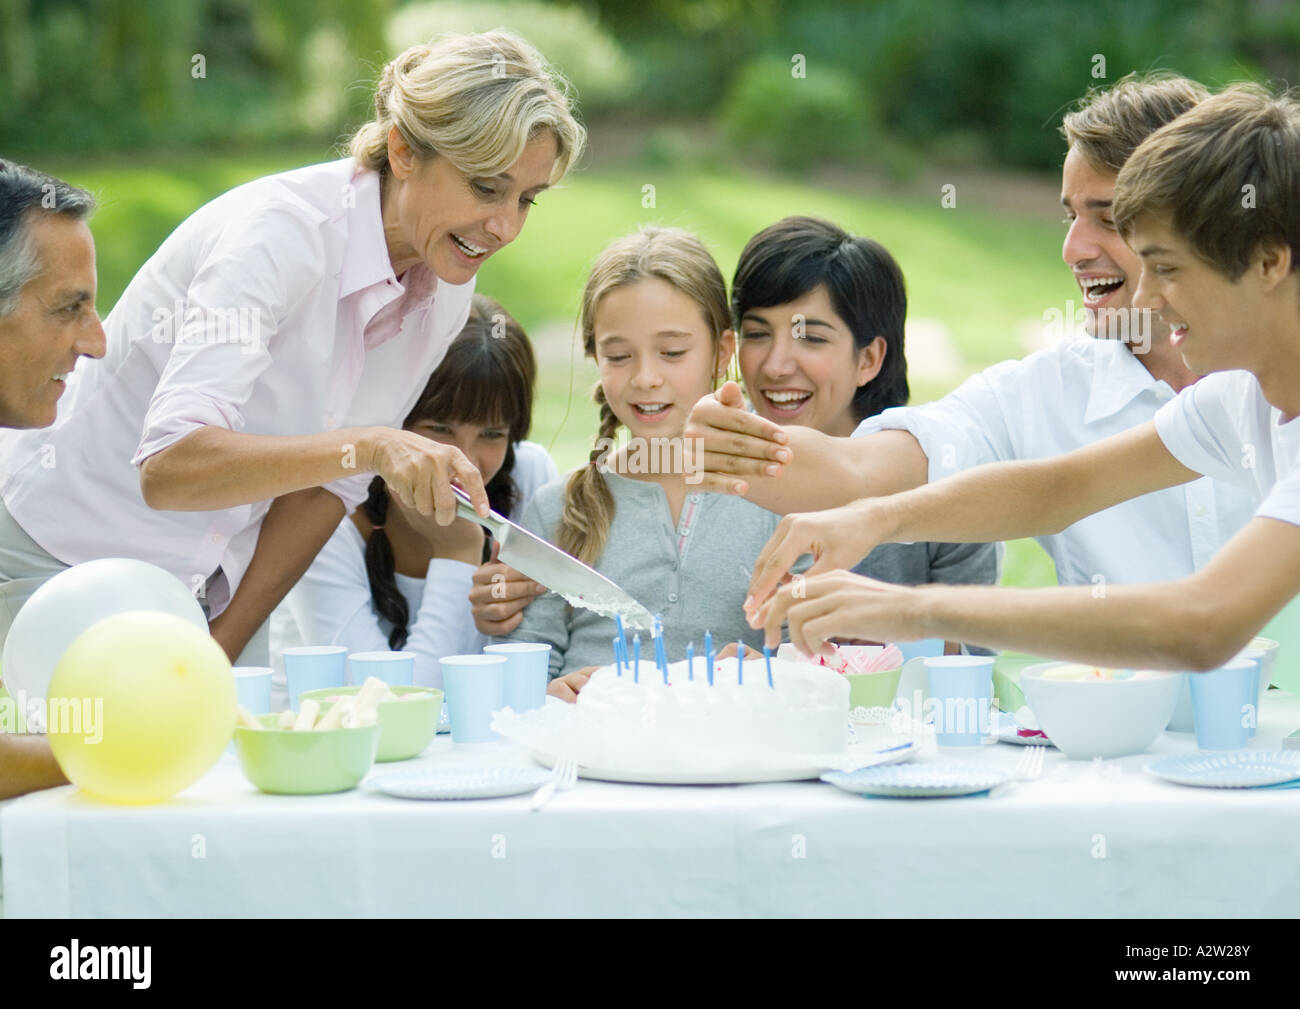 Outdoor birthday party mature woman cutting birthday cake Stock